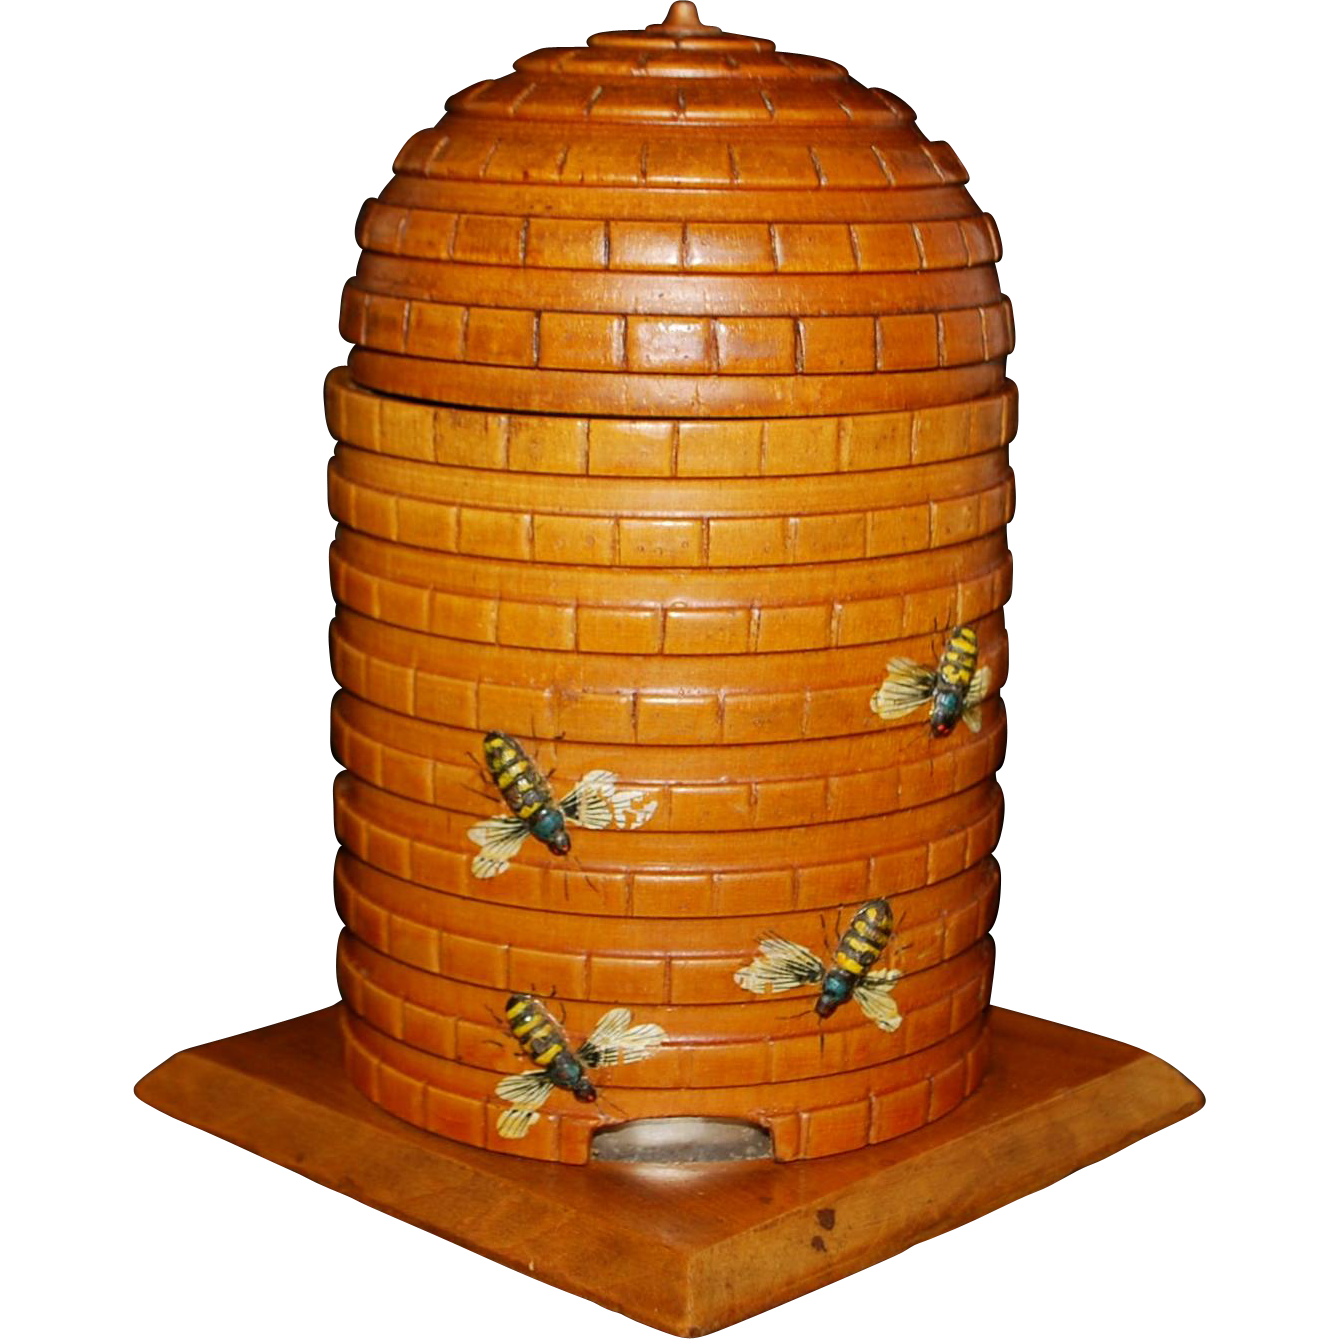 Victorian Carved Wood Honey Pot Container - 1890